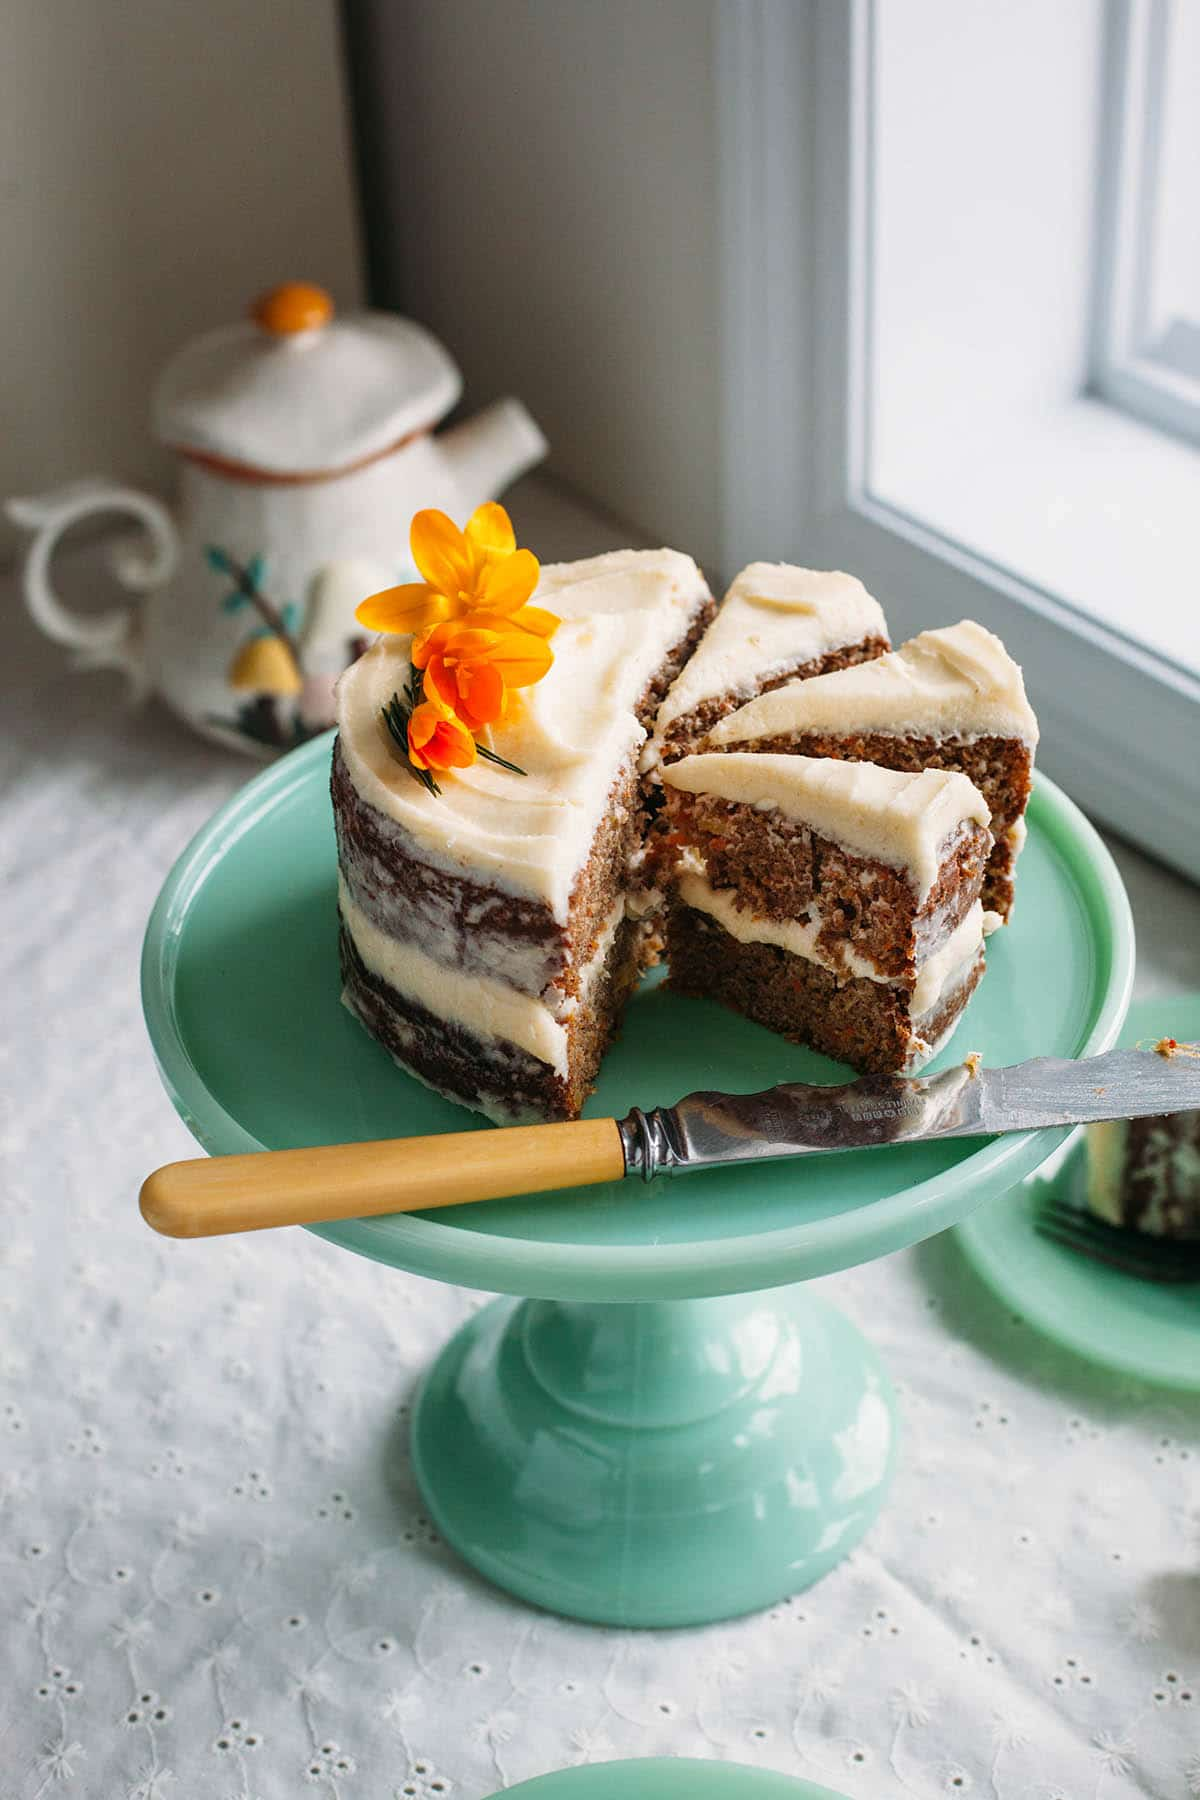 A spiced carrot cake with pineapple cut into slices on a green cake stand.